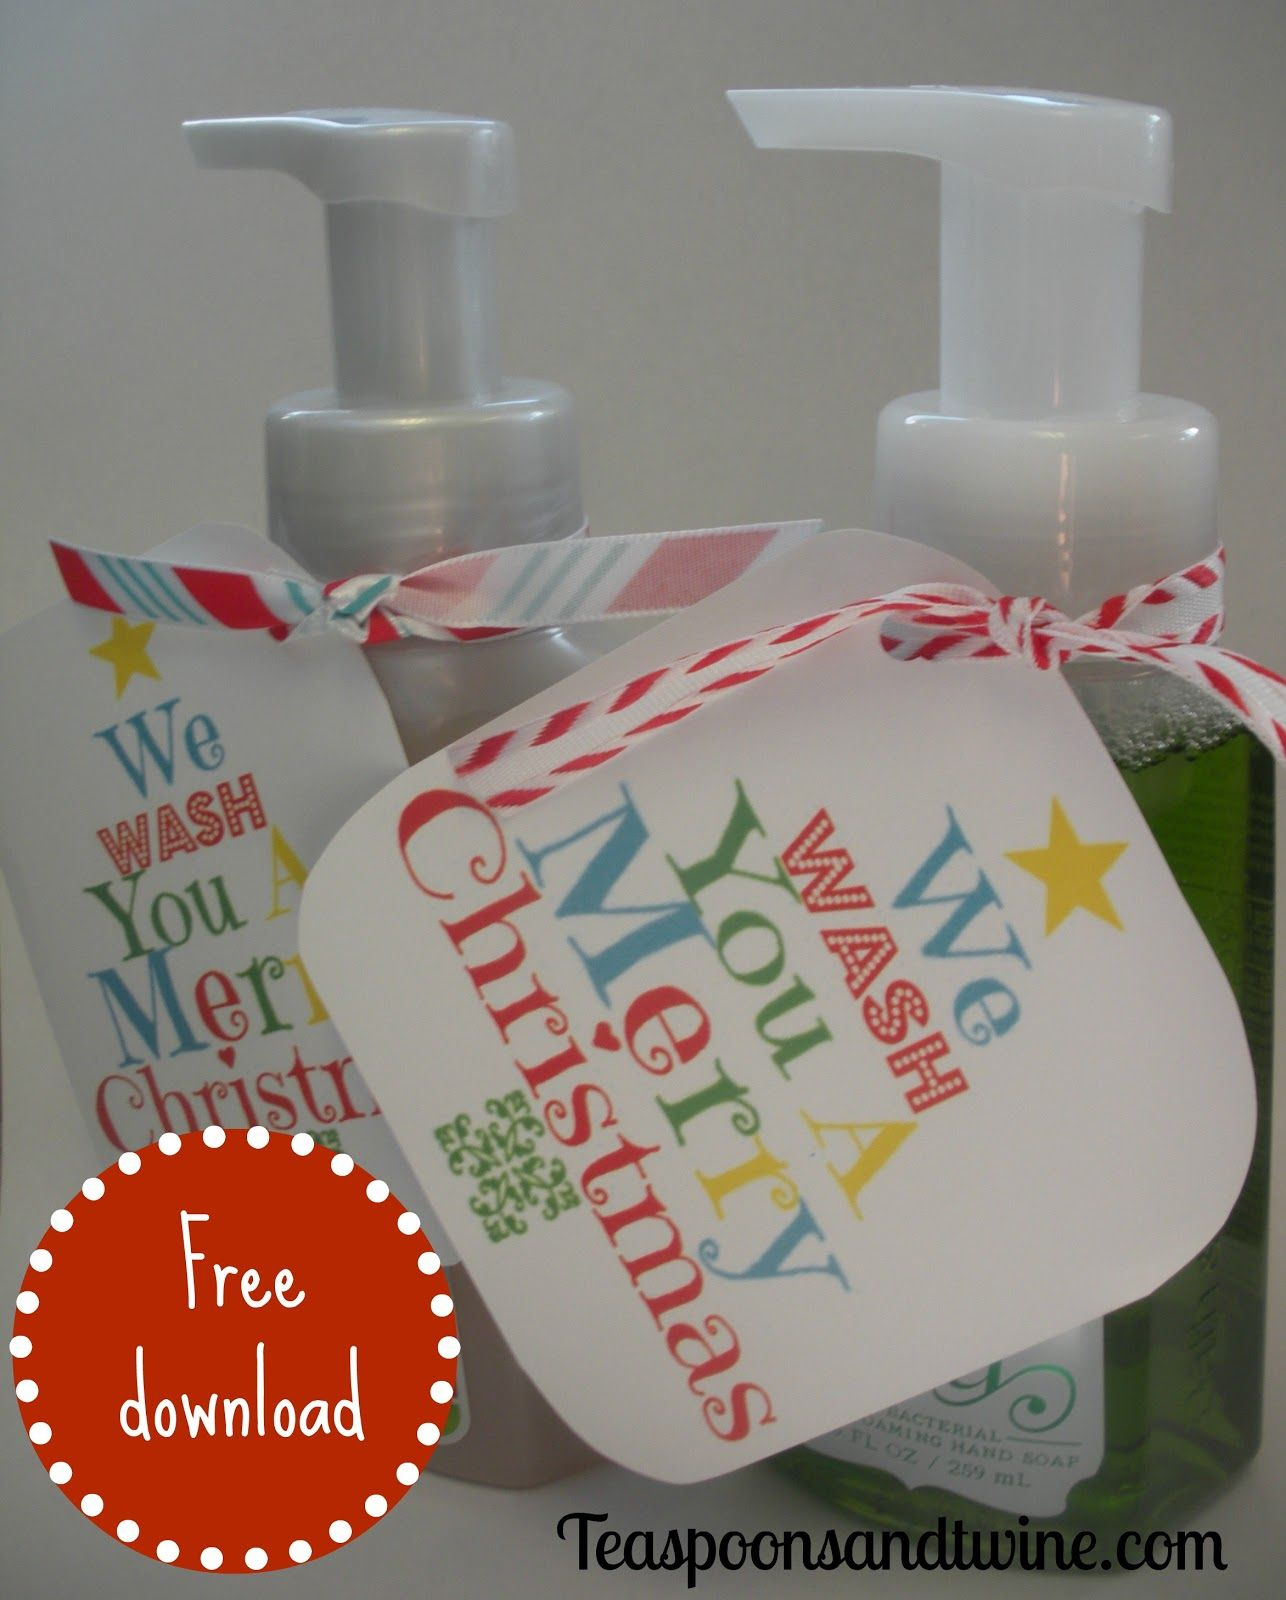 Why Soap Is The Only Present You Need This Christmas | Holiday Gift - We Wash You A Merry Christmas Free Printable